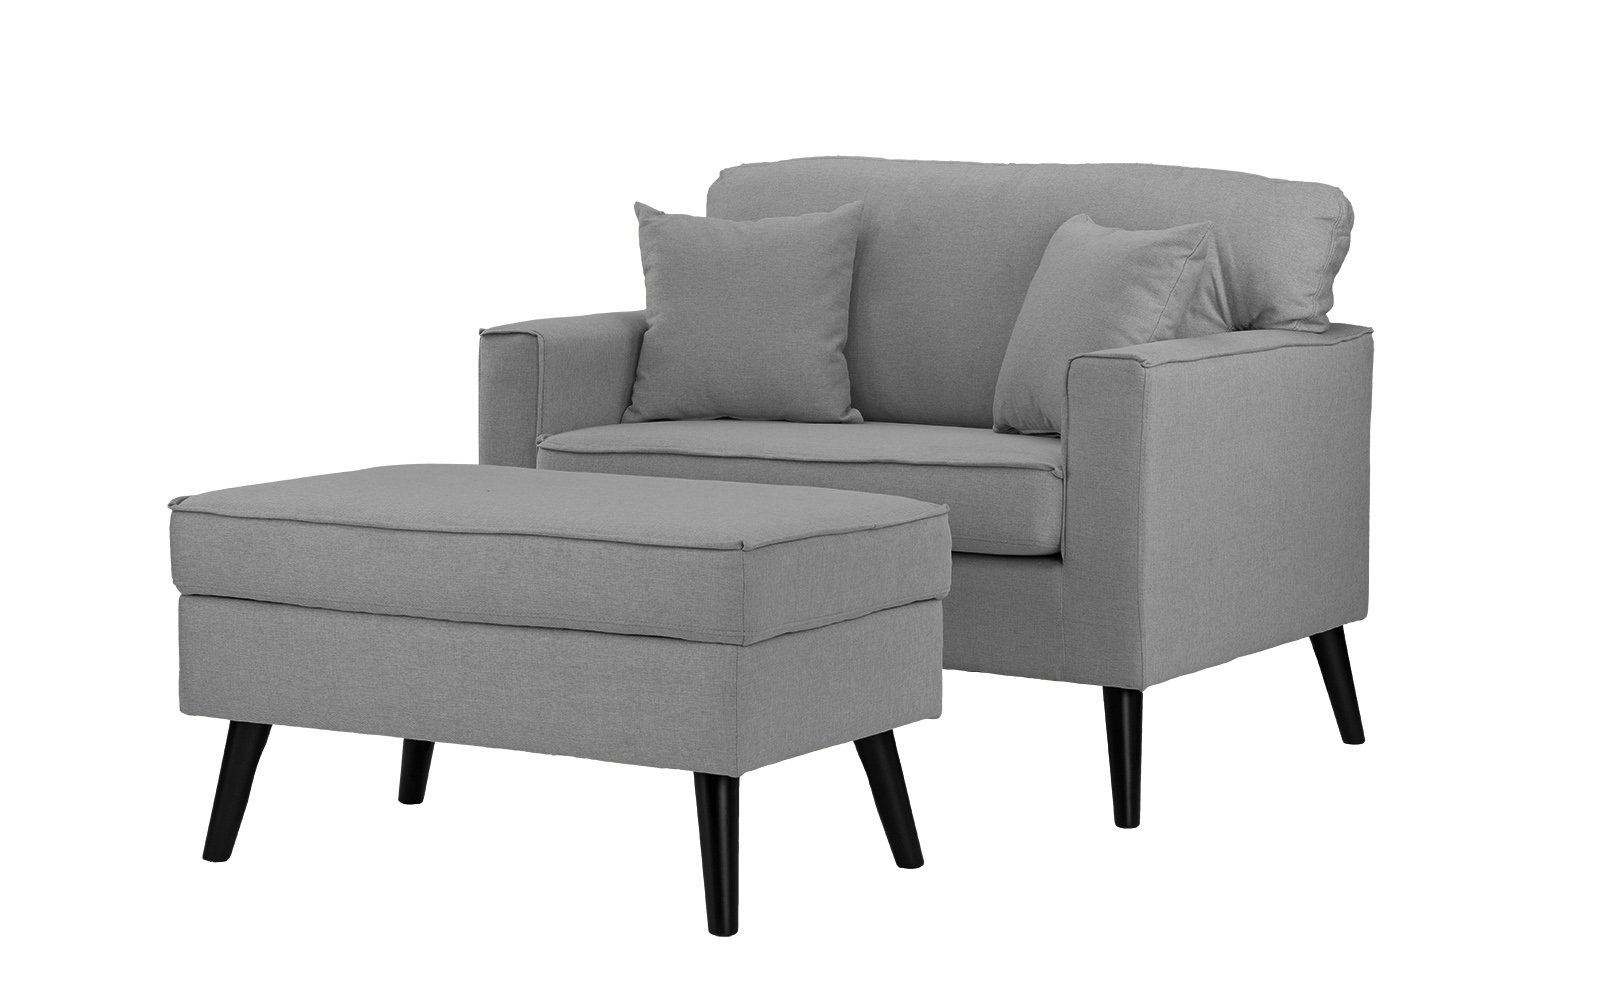 Sofa Chair With Ottoman Throughout Recent Timothy Modern Accent Chair With Footrest And Storage Compartment (View 15 of 20)